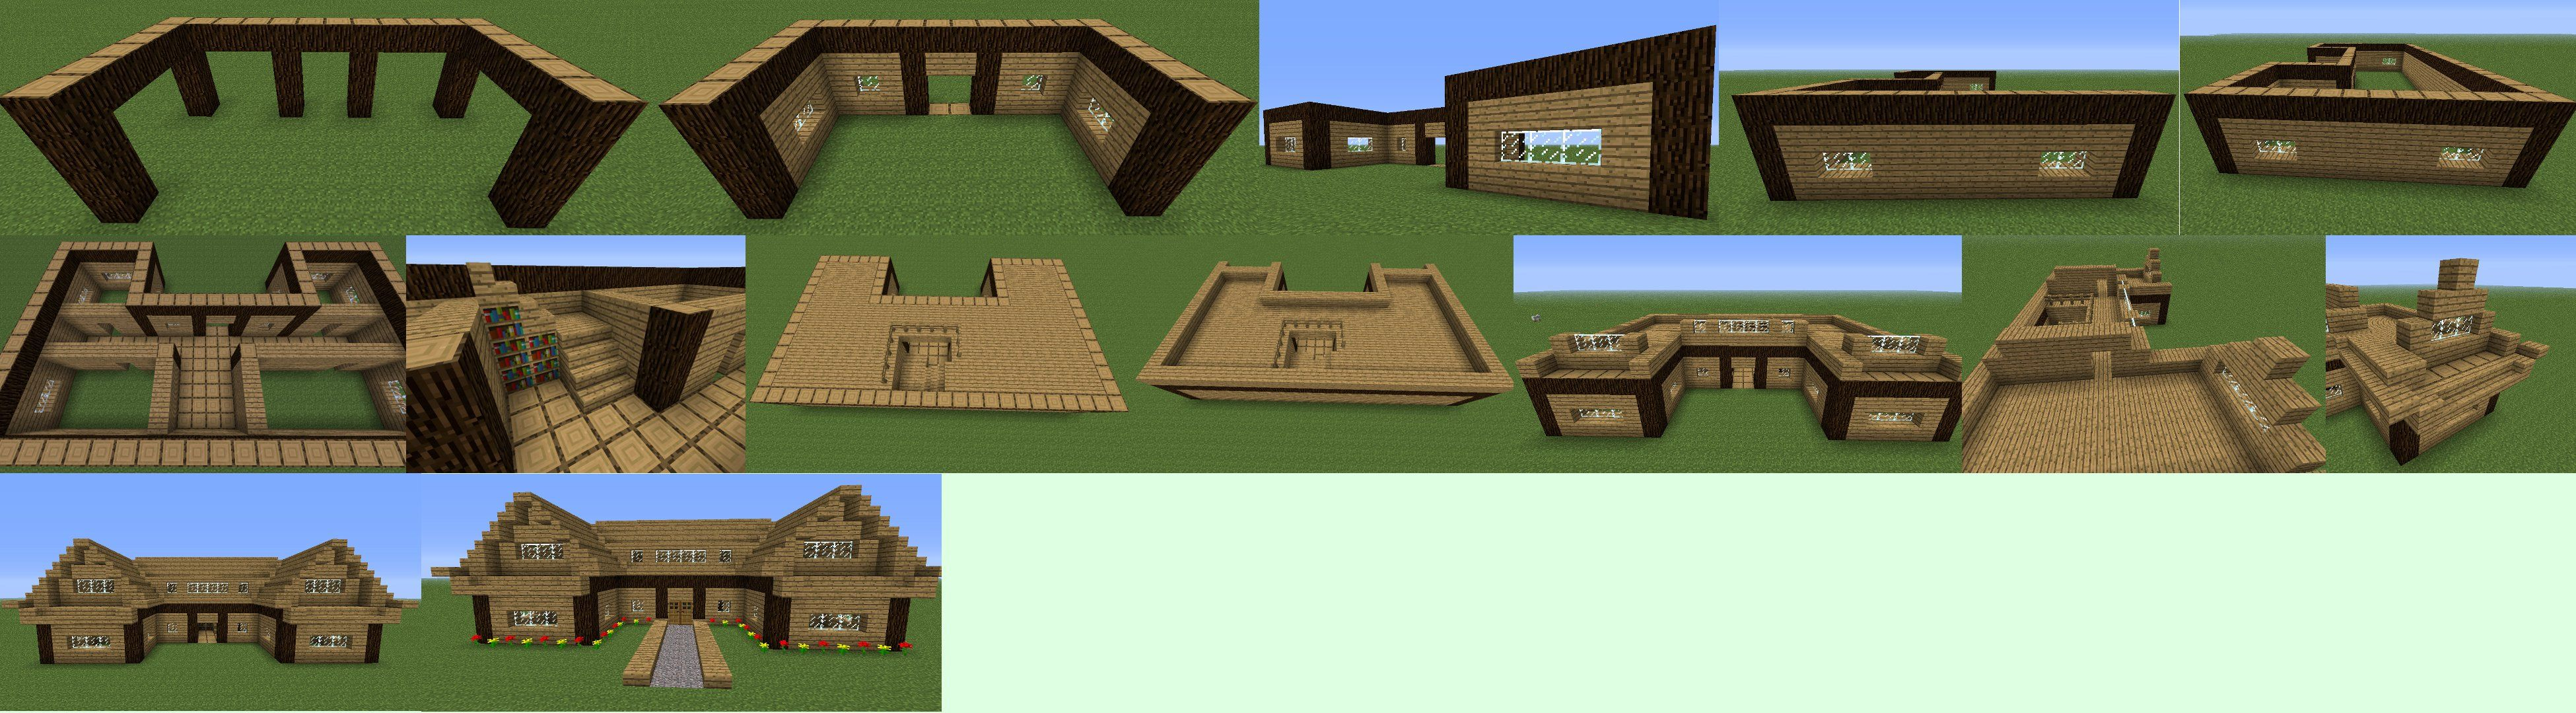 minecraft castle step by step guide